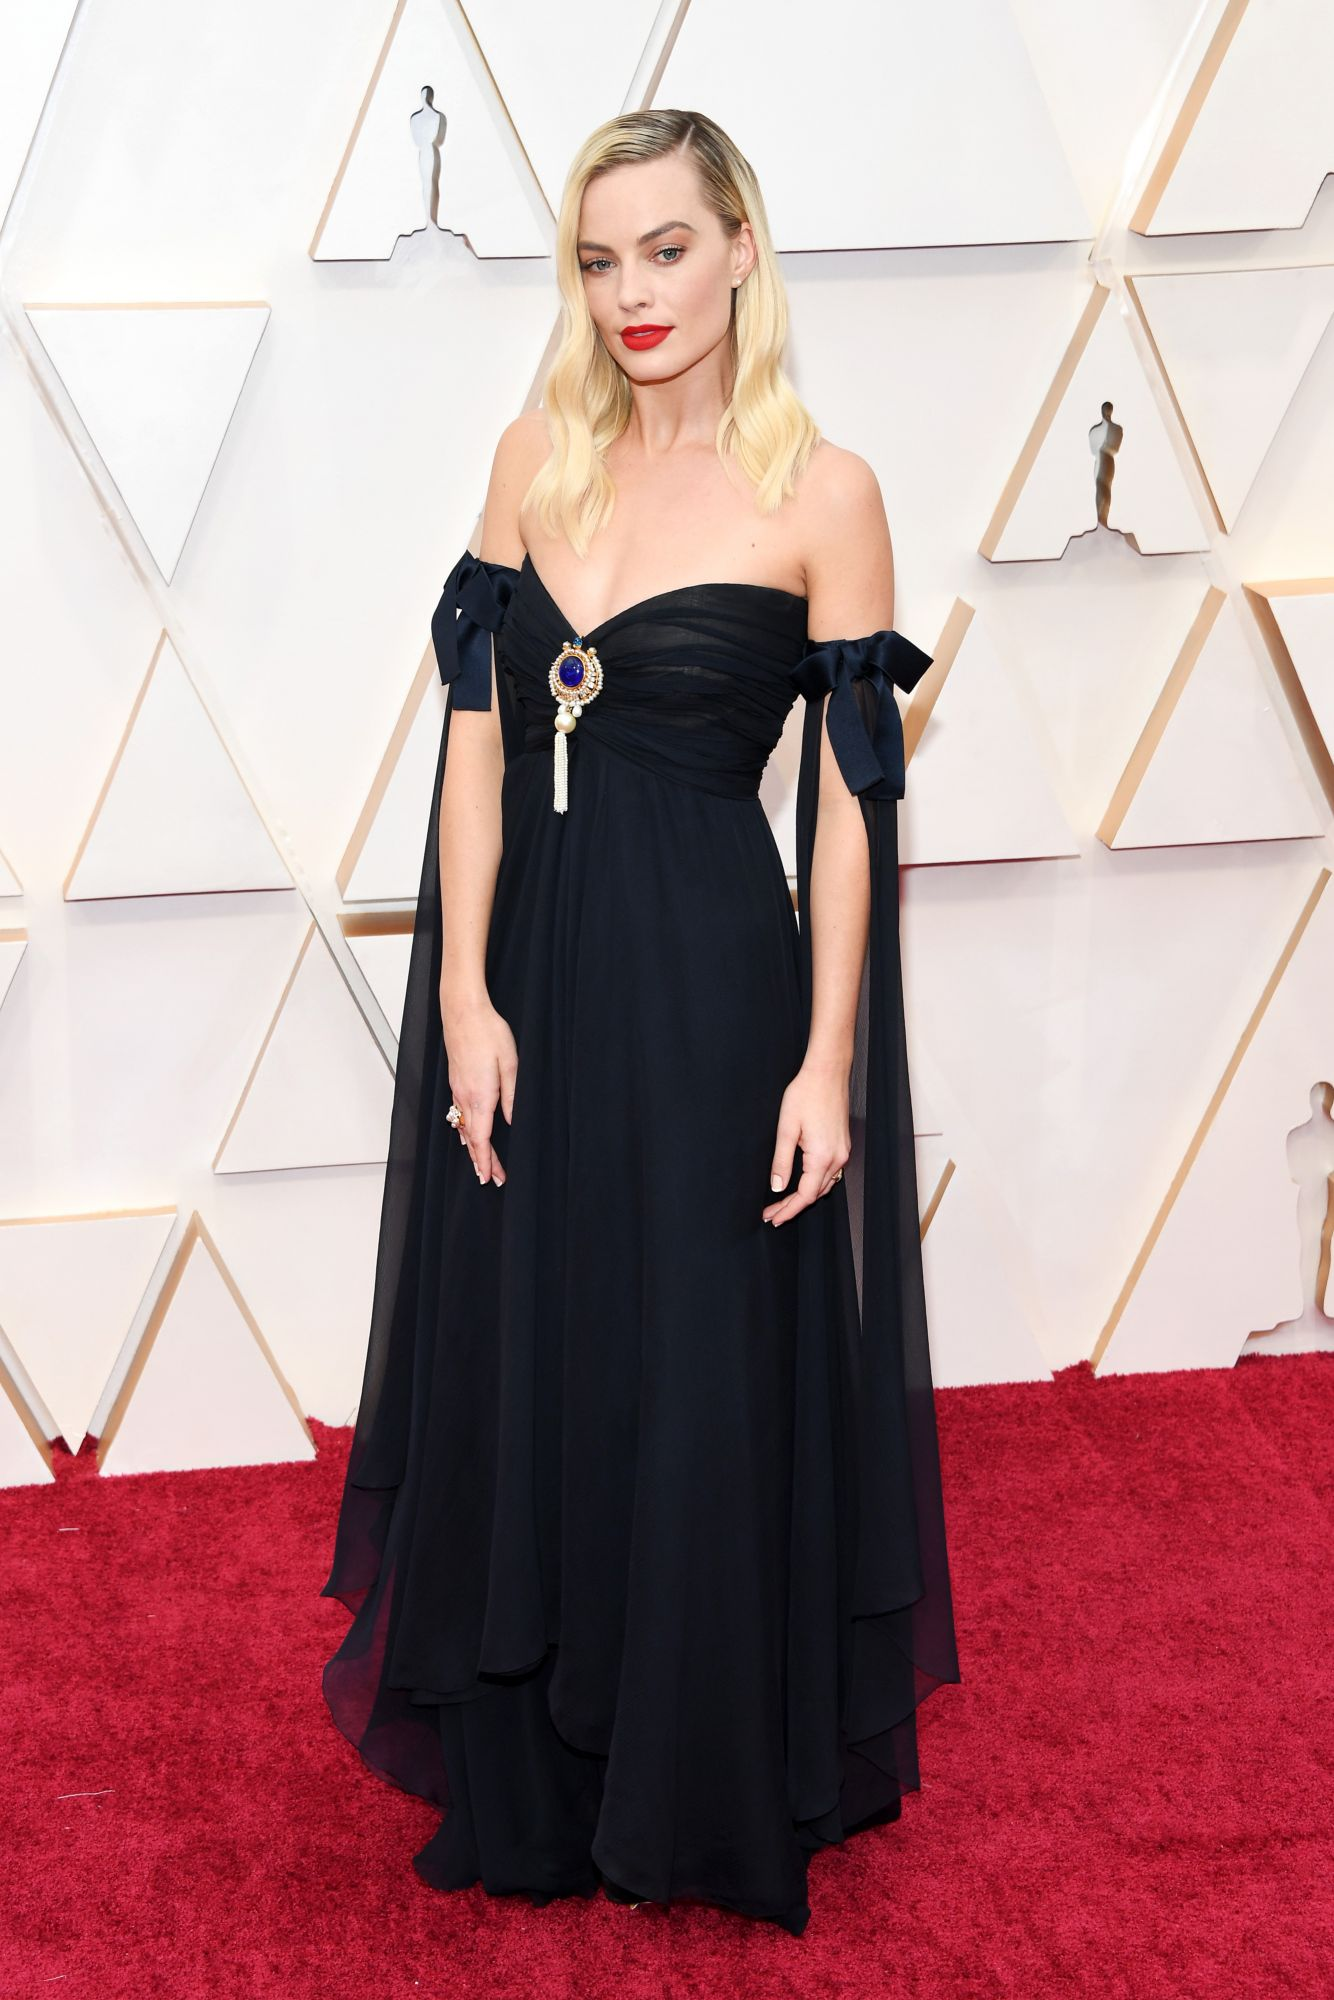 HOLLYWOOD, CALIFORNIA - FEBRUARY 09: Margot Robbie attends the 92nd Annual Academy Awards at Hollywood and Highland on February 09, 2020 in Hollywood, California. (Photo by Kevin Mazur/Getty Images)